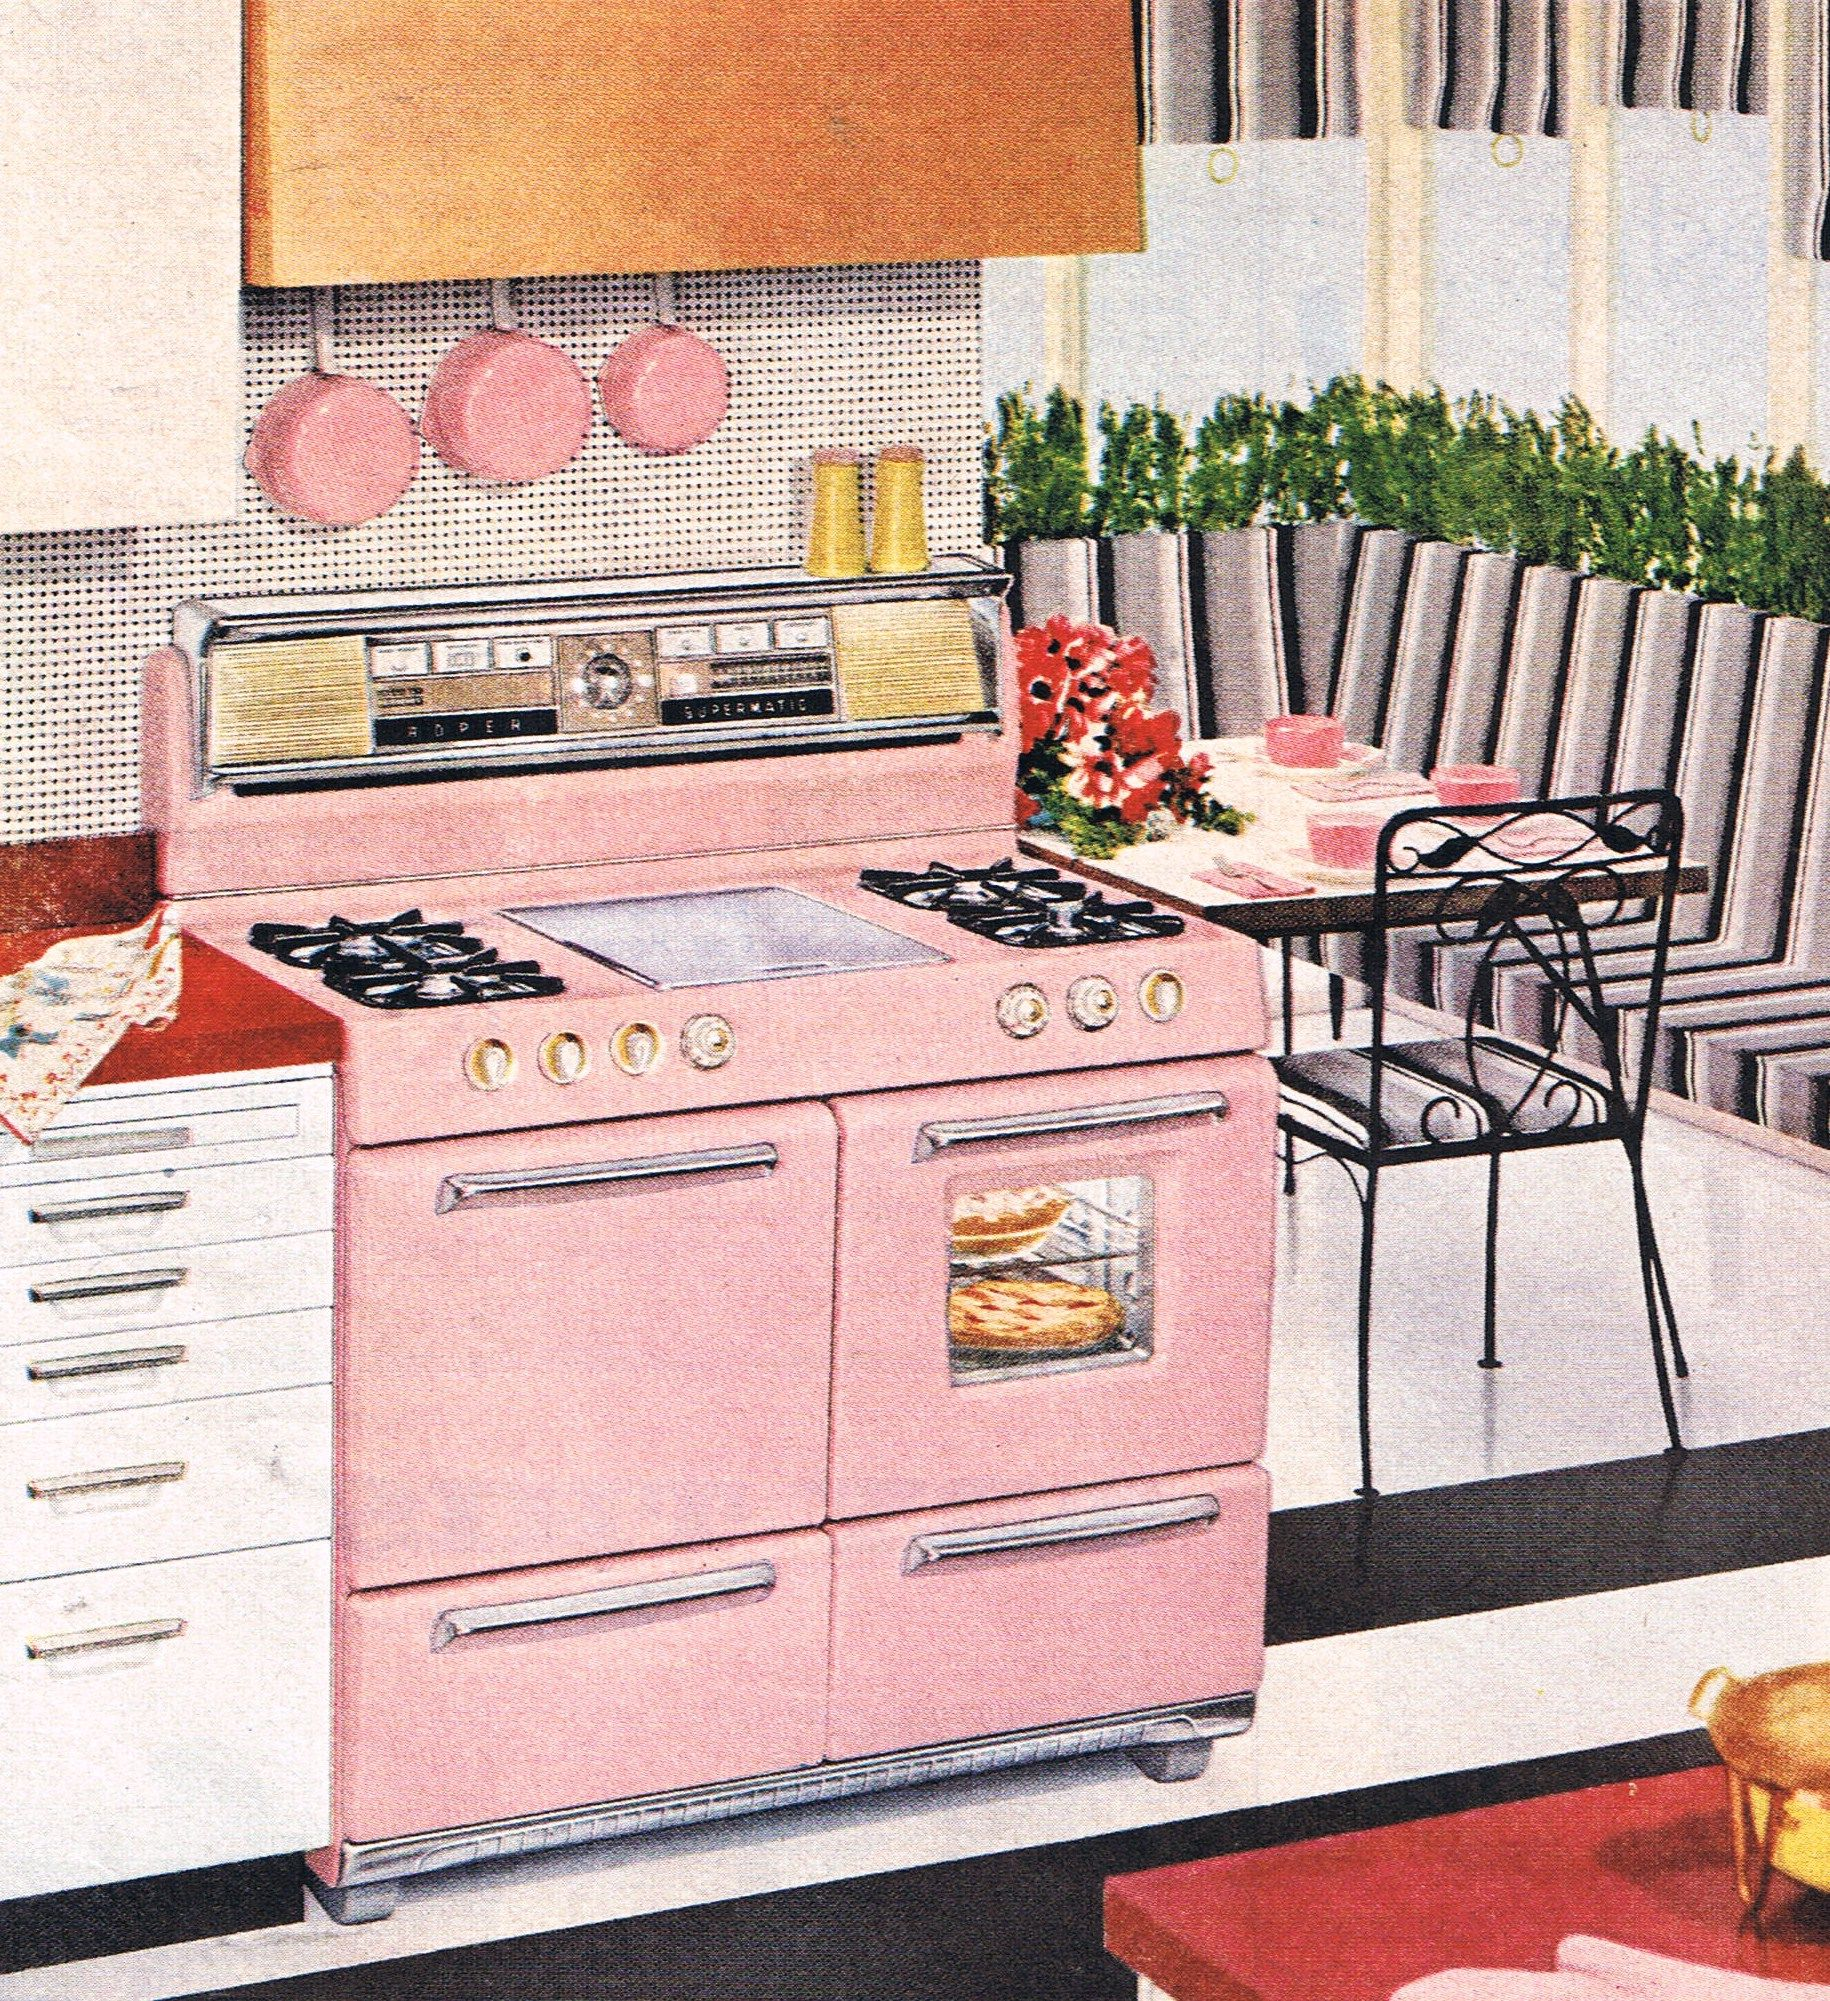 Best Stylish Pink Roper Stove And Eating Area 1959 Retro 640 x 480